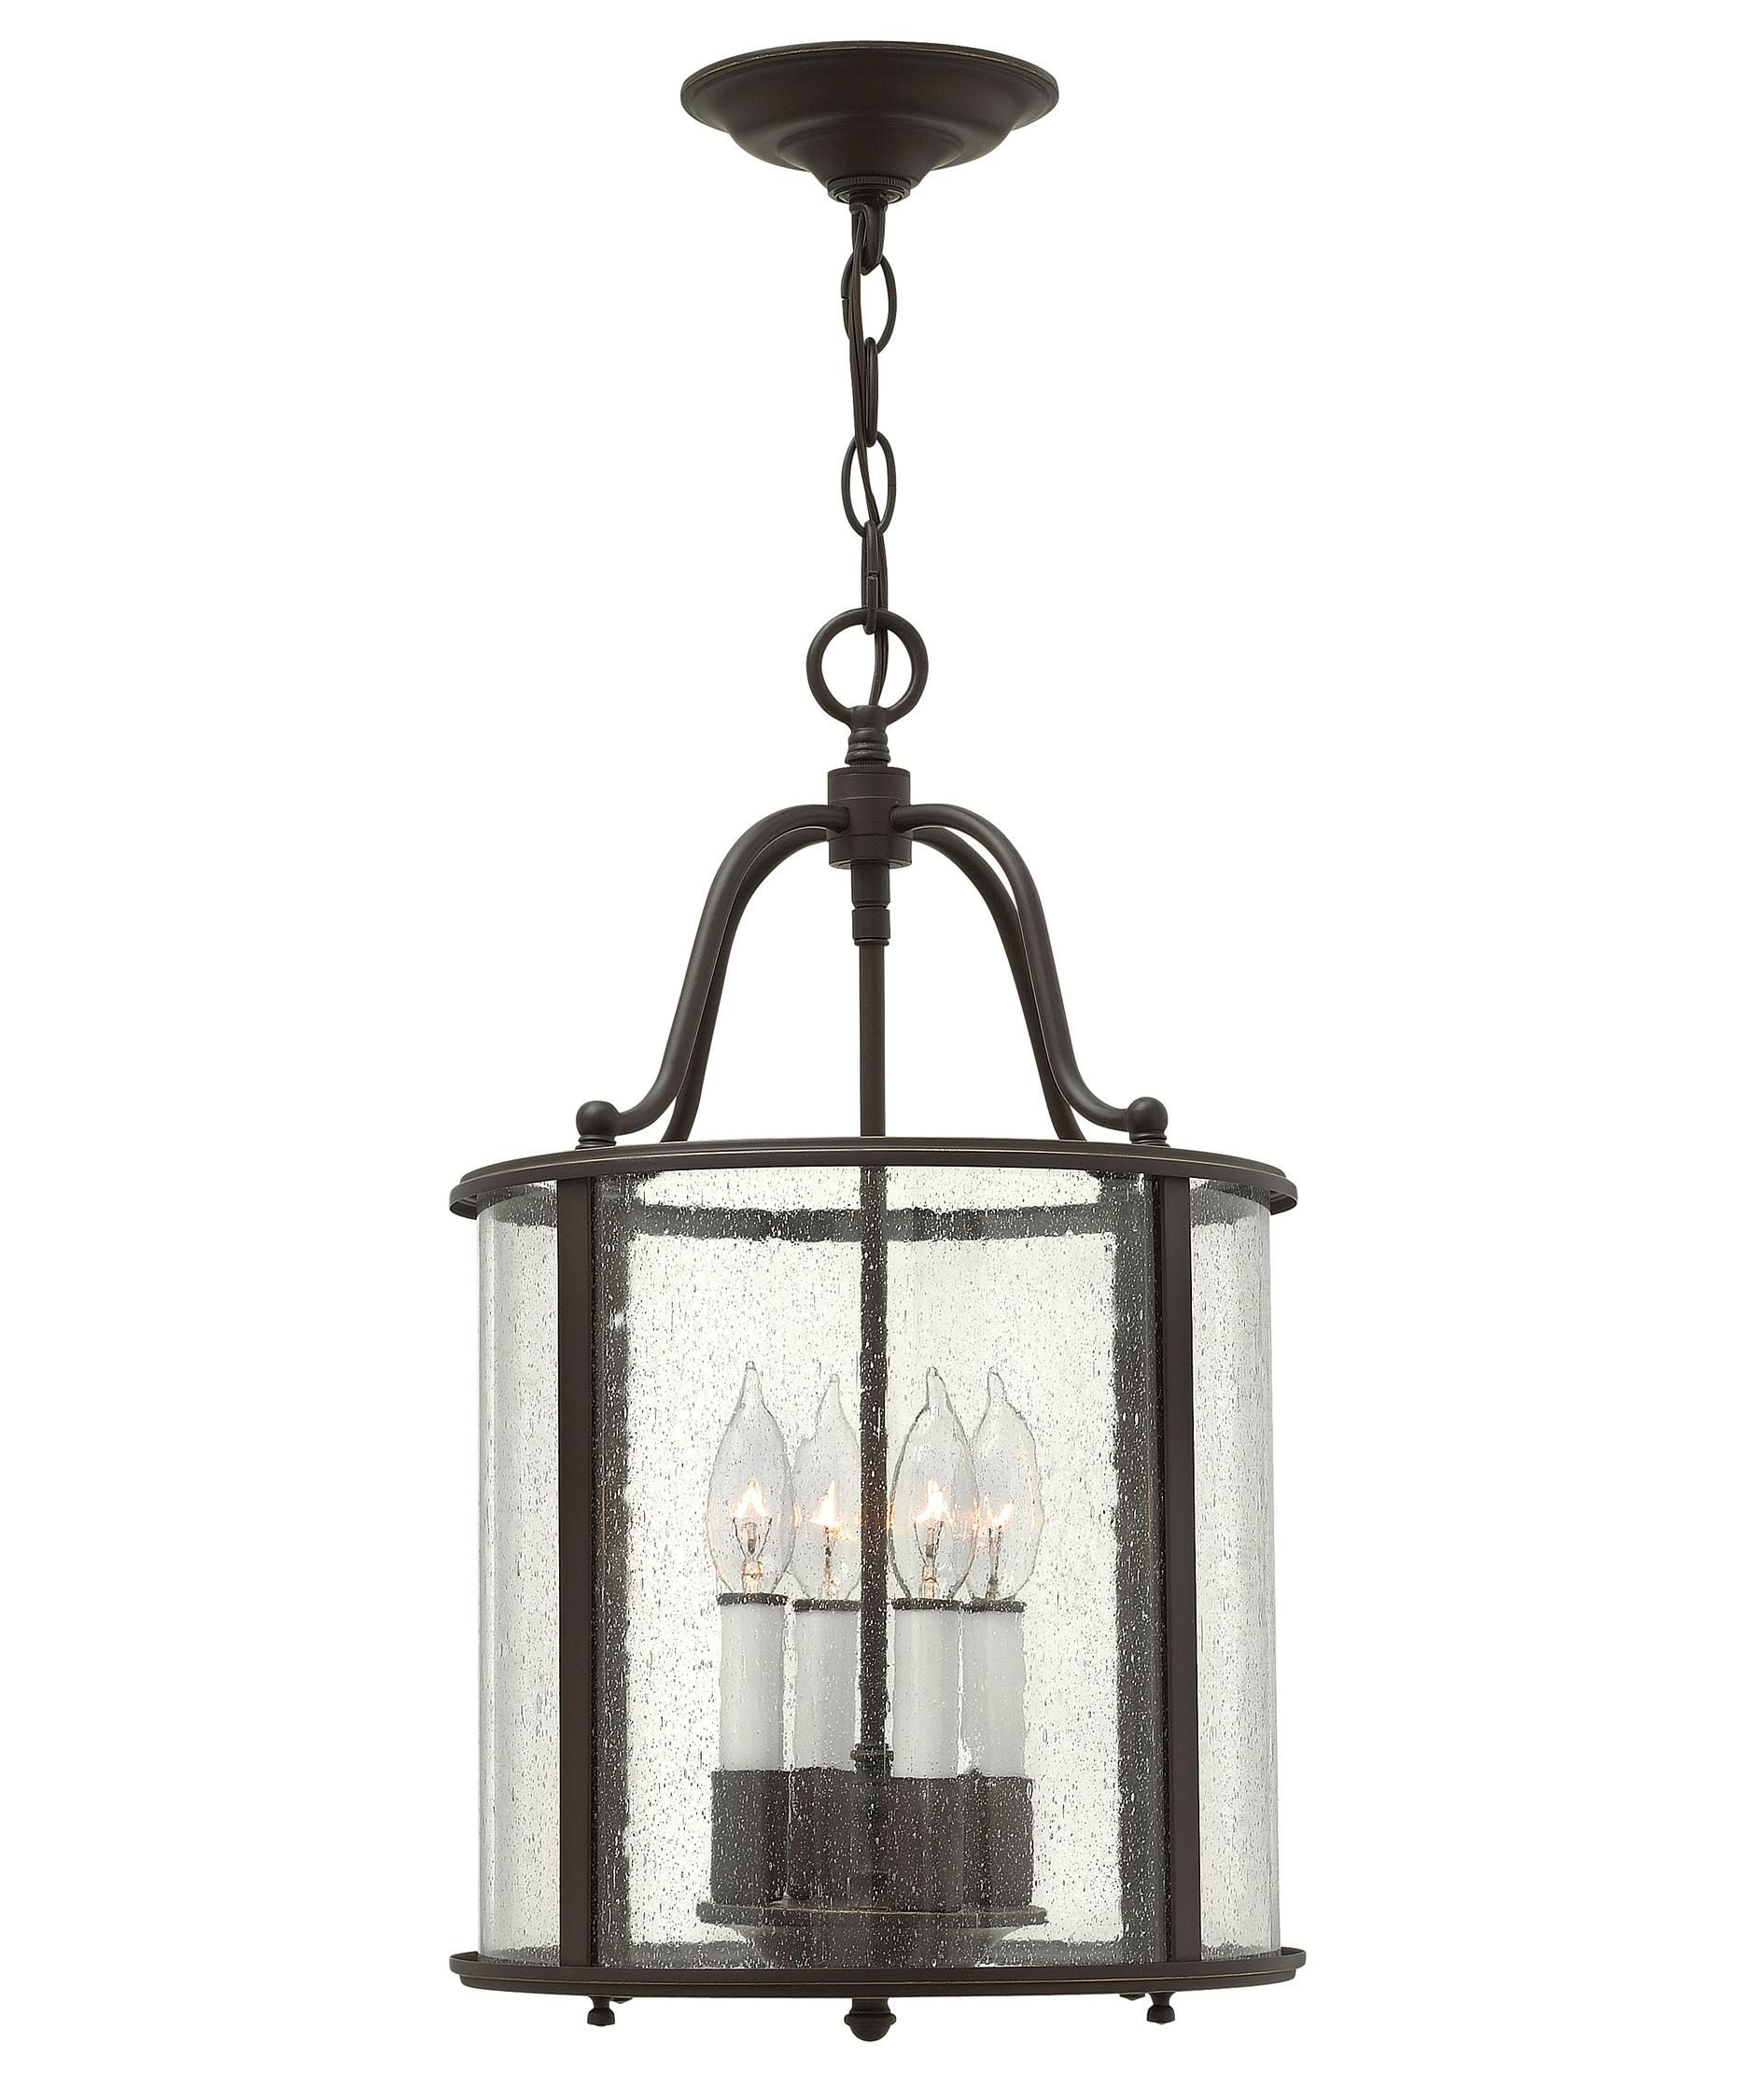 larkin light foyer dp com bronze ceiling kichler indoor pendant olde amazon lights fixtures hanging